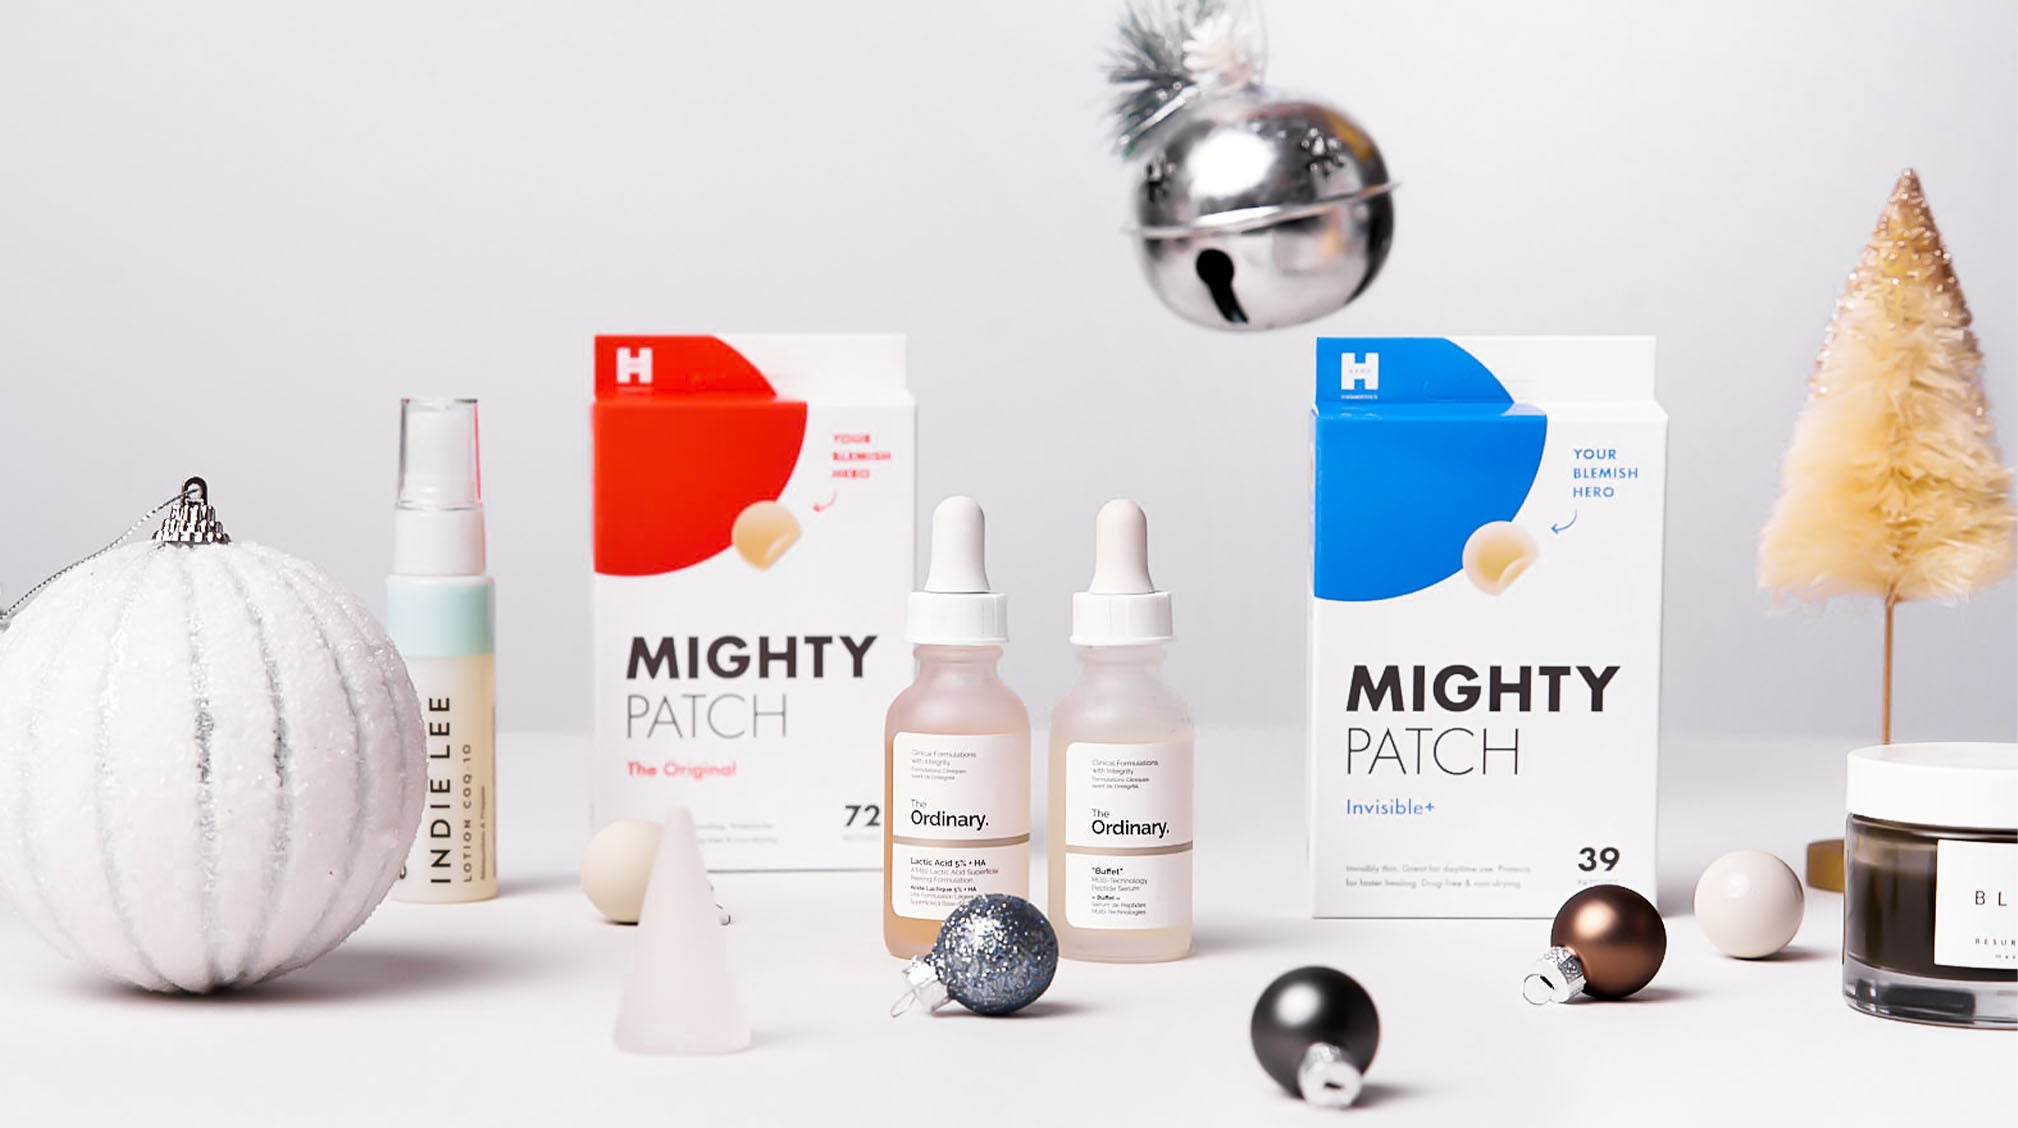 Acne care gifts from Hero Cosmetics, The Ordinary, Indie Lee and Herbivore next to Christmas ornaments